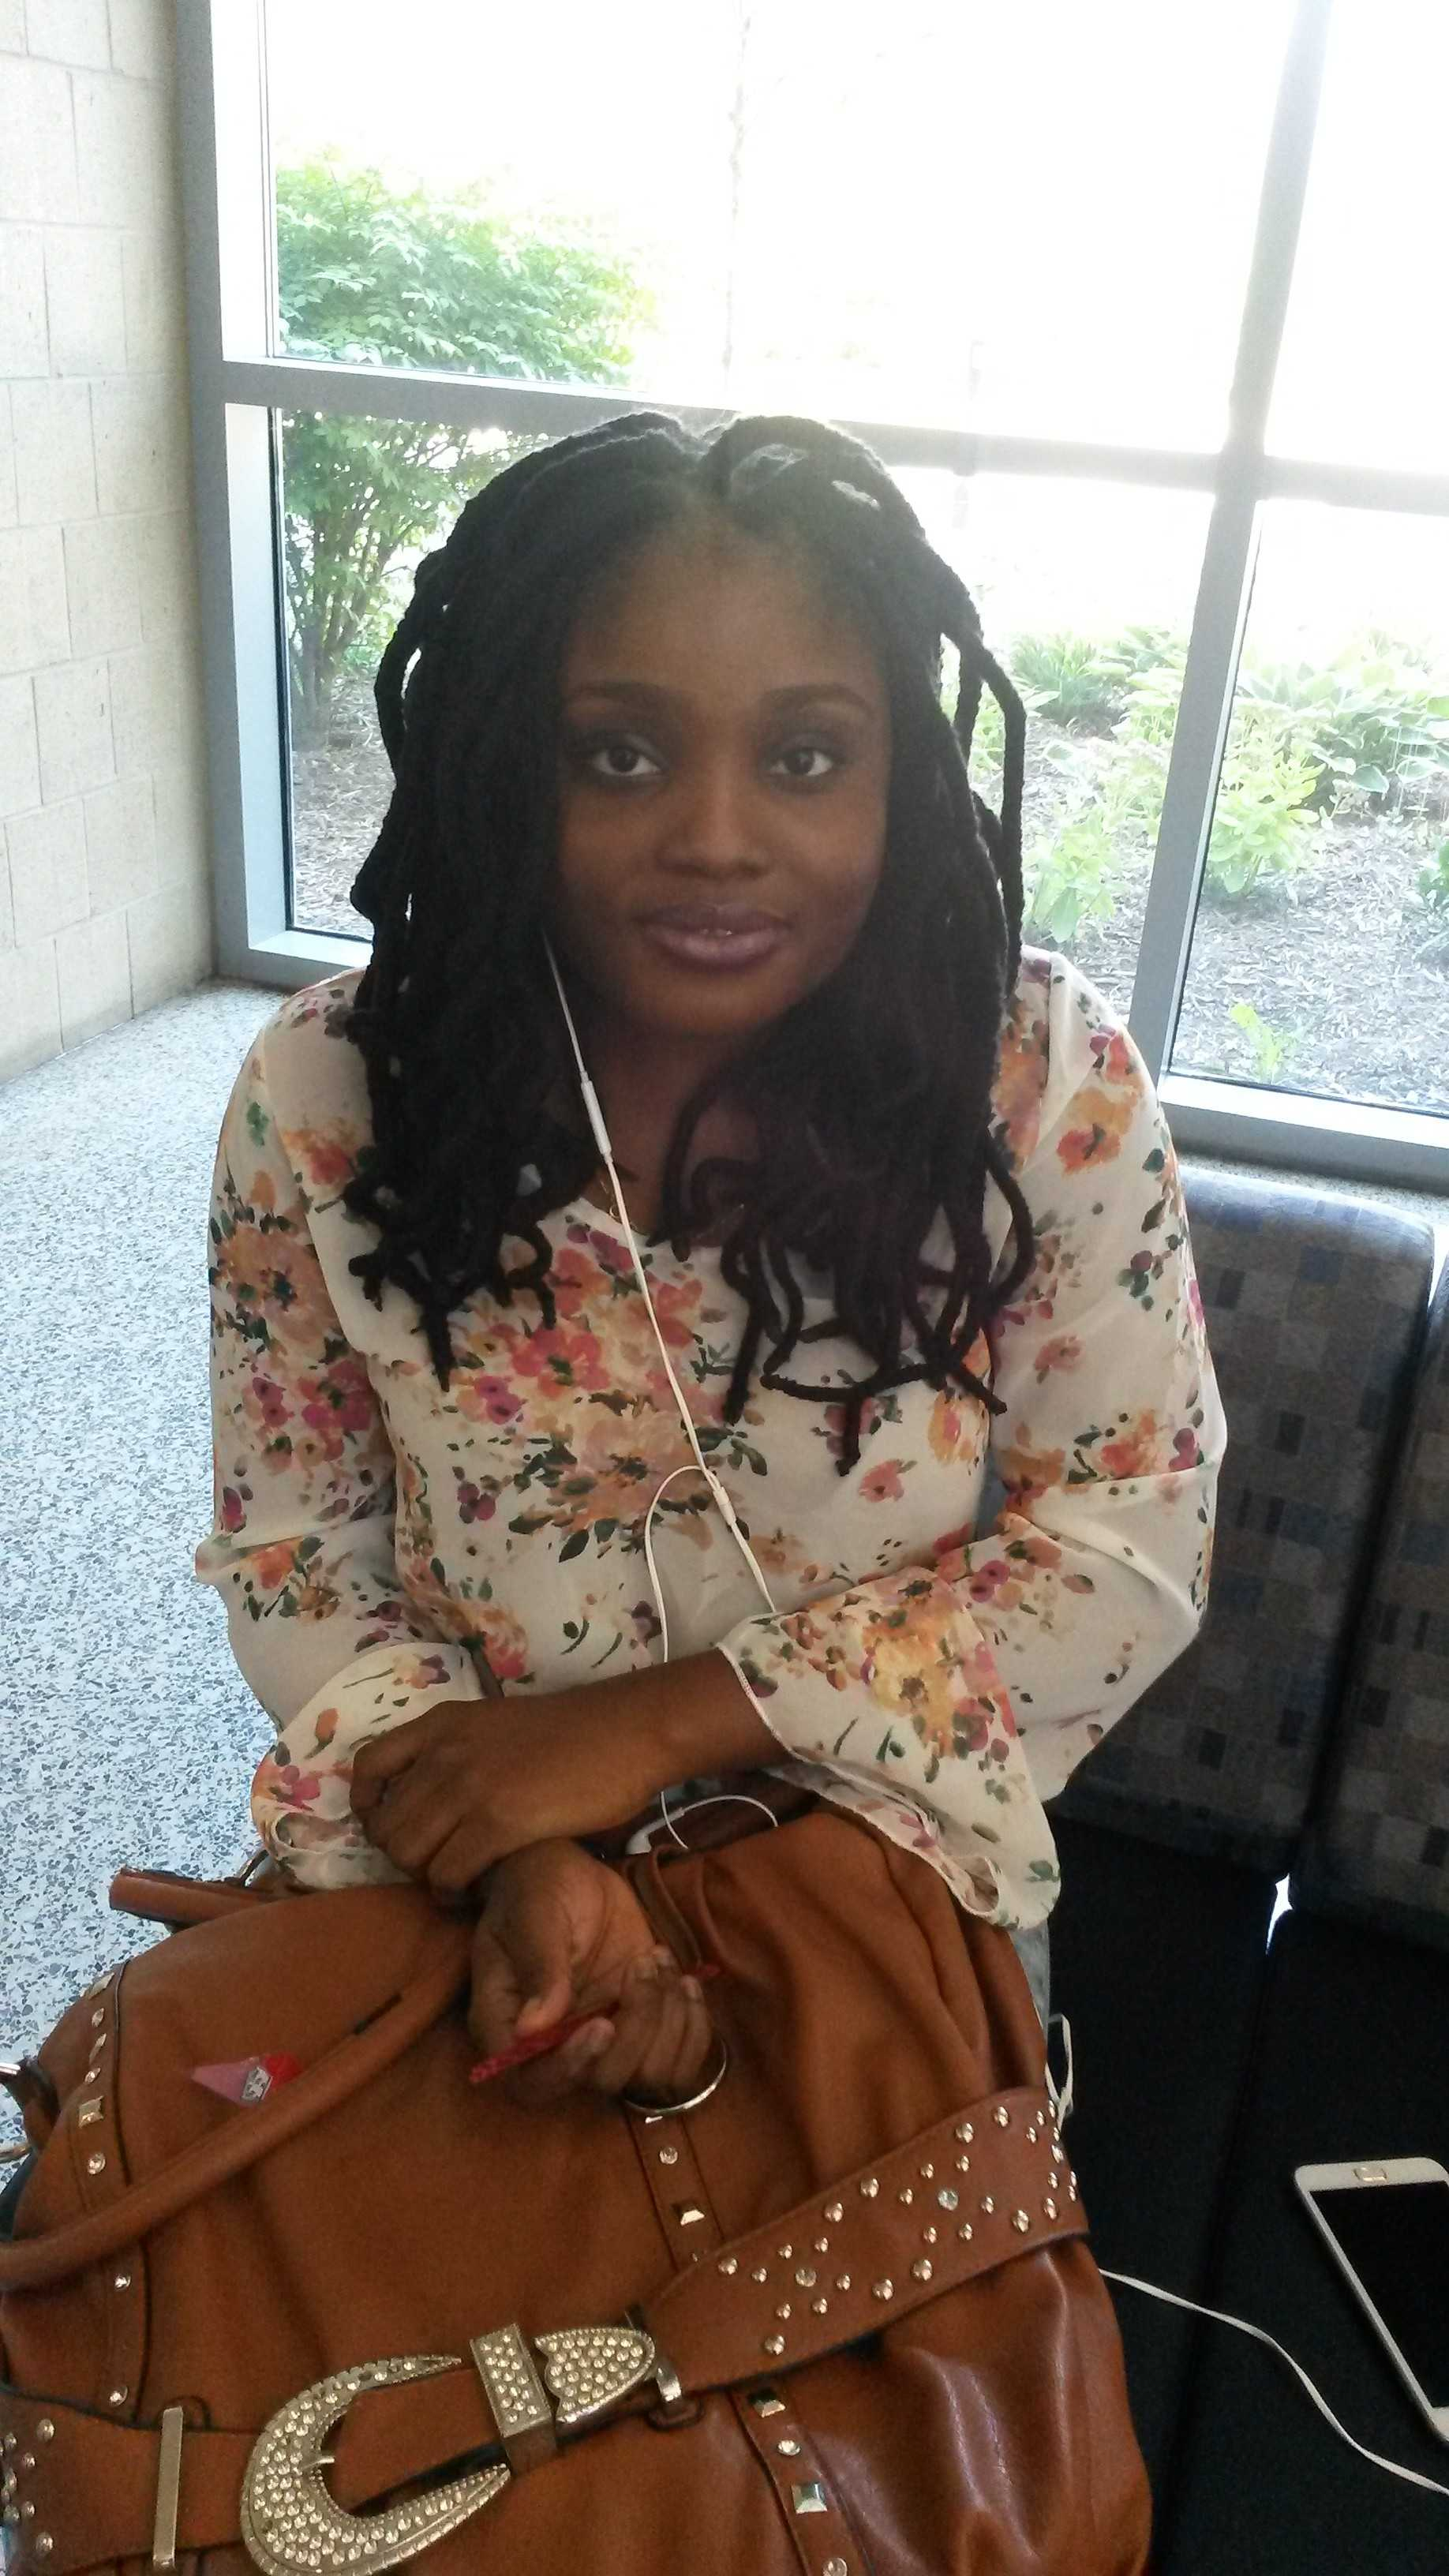 Abimbola Akindileni is a sophomore Accounting major. She says the best thing this summer was being able to travel out of state to spend time with family and taking a few summer classes.